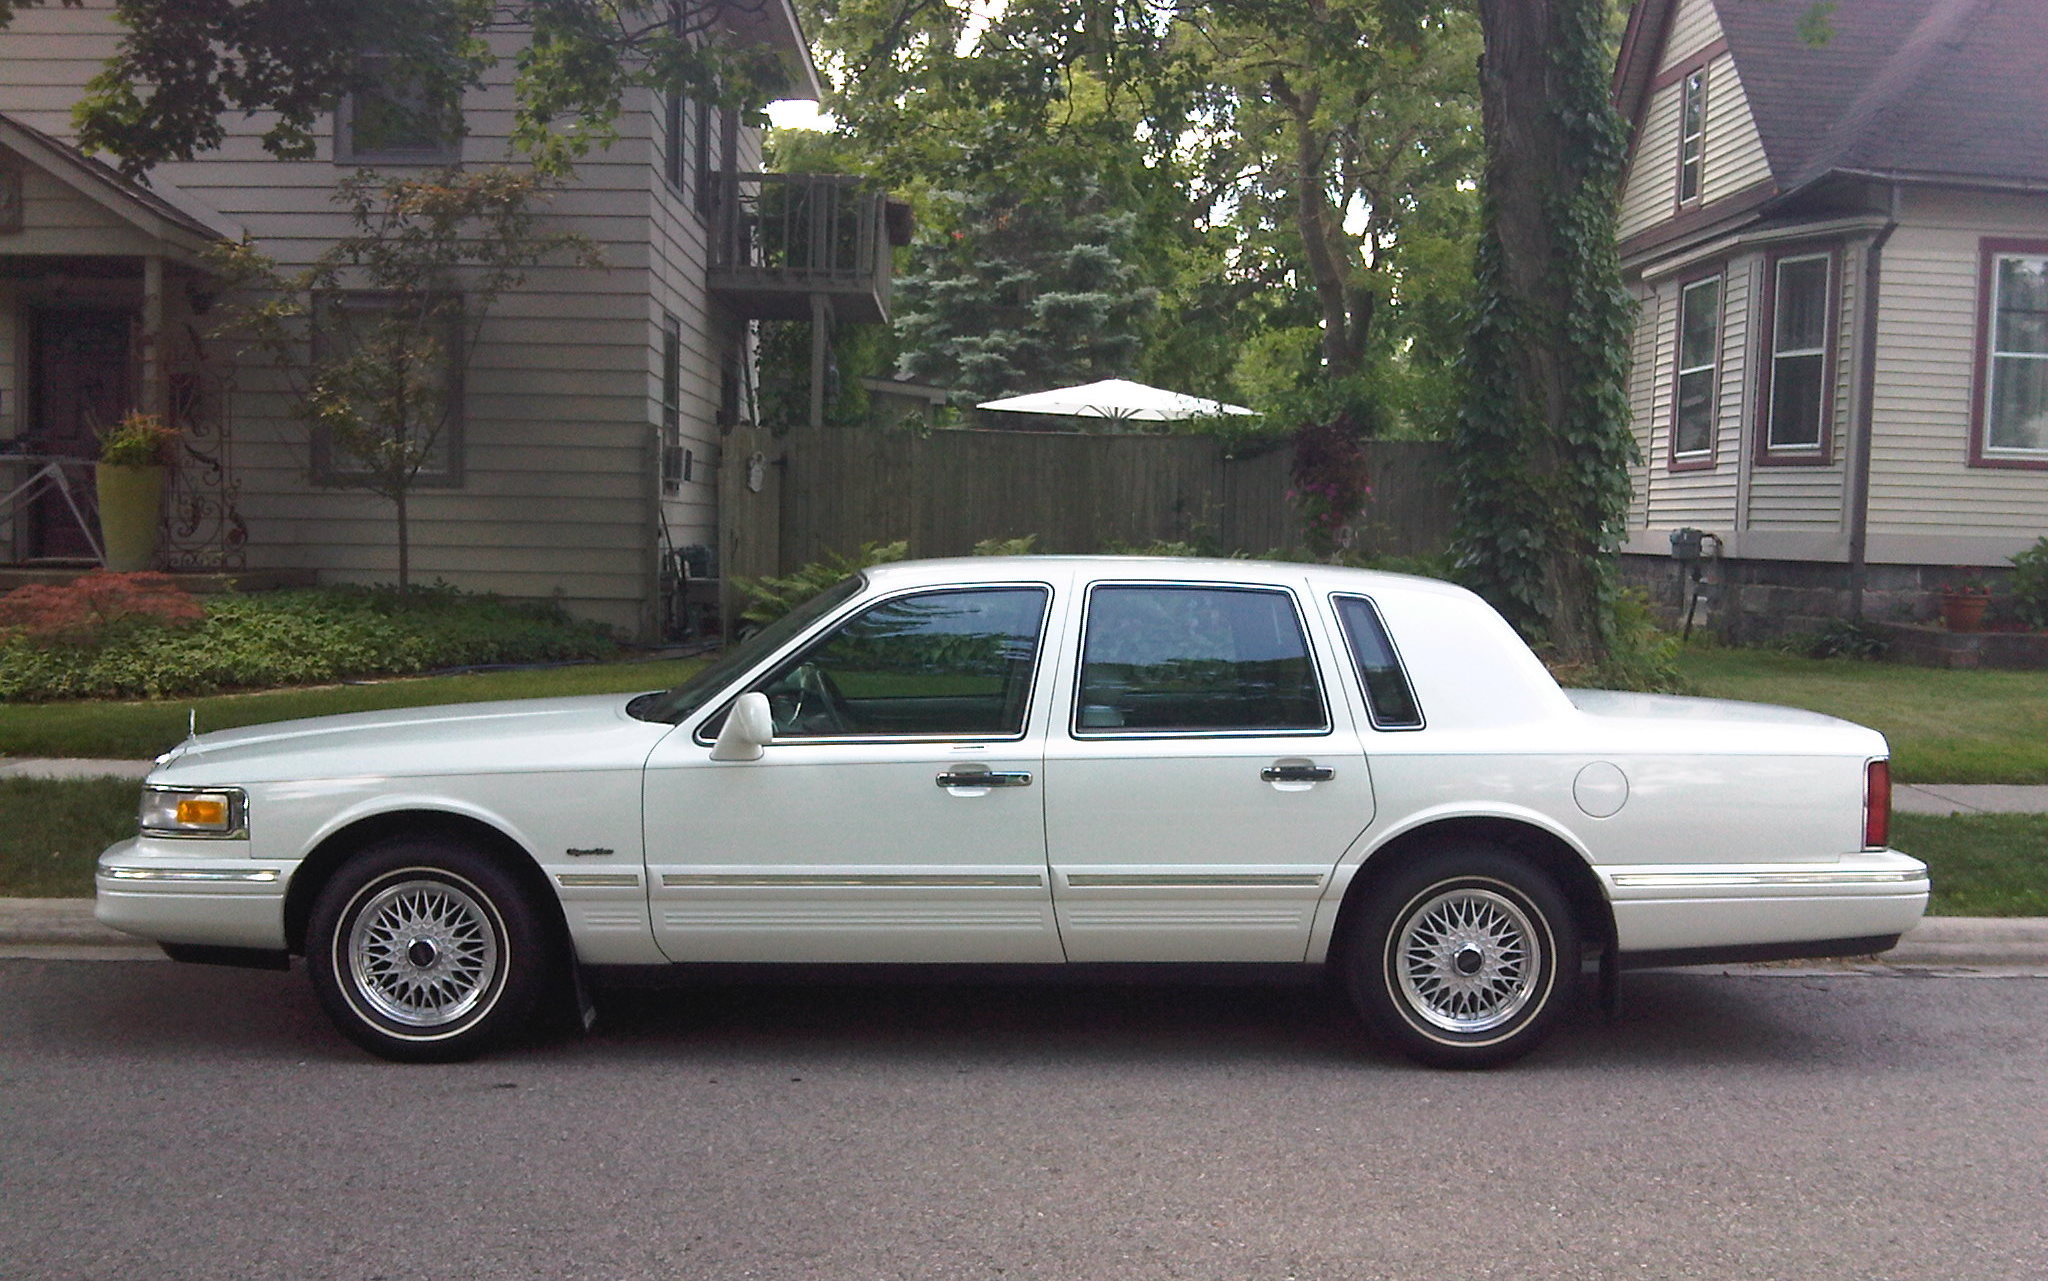 1997 Lincoln Town Car Image 14